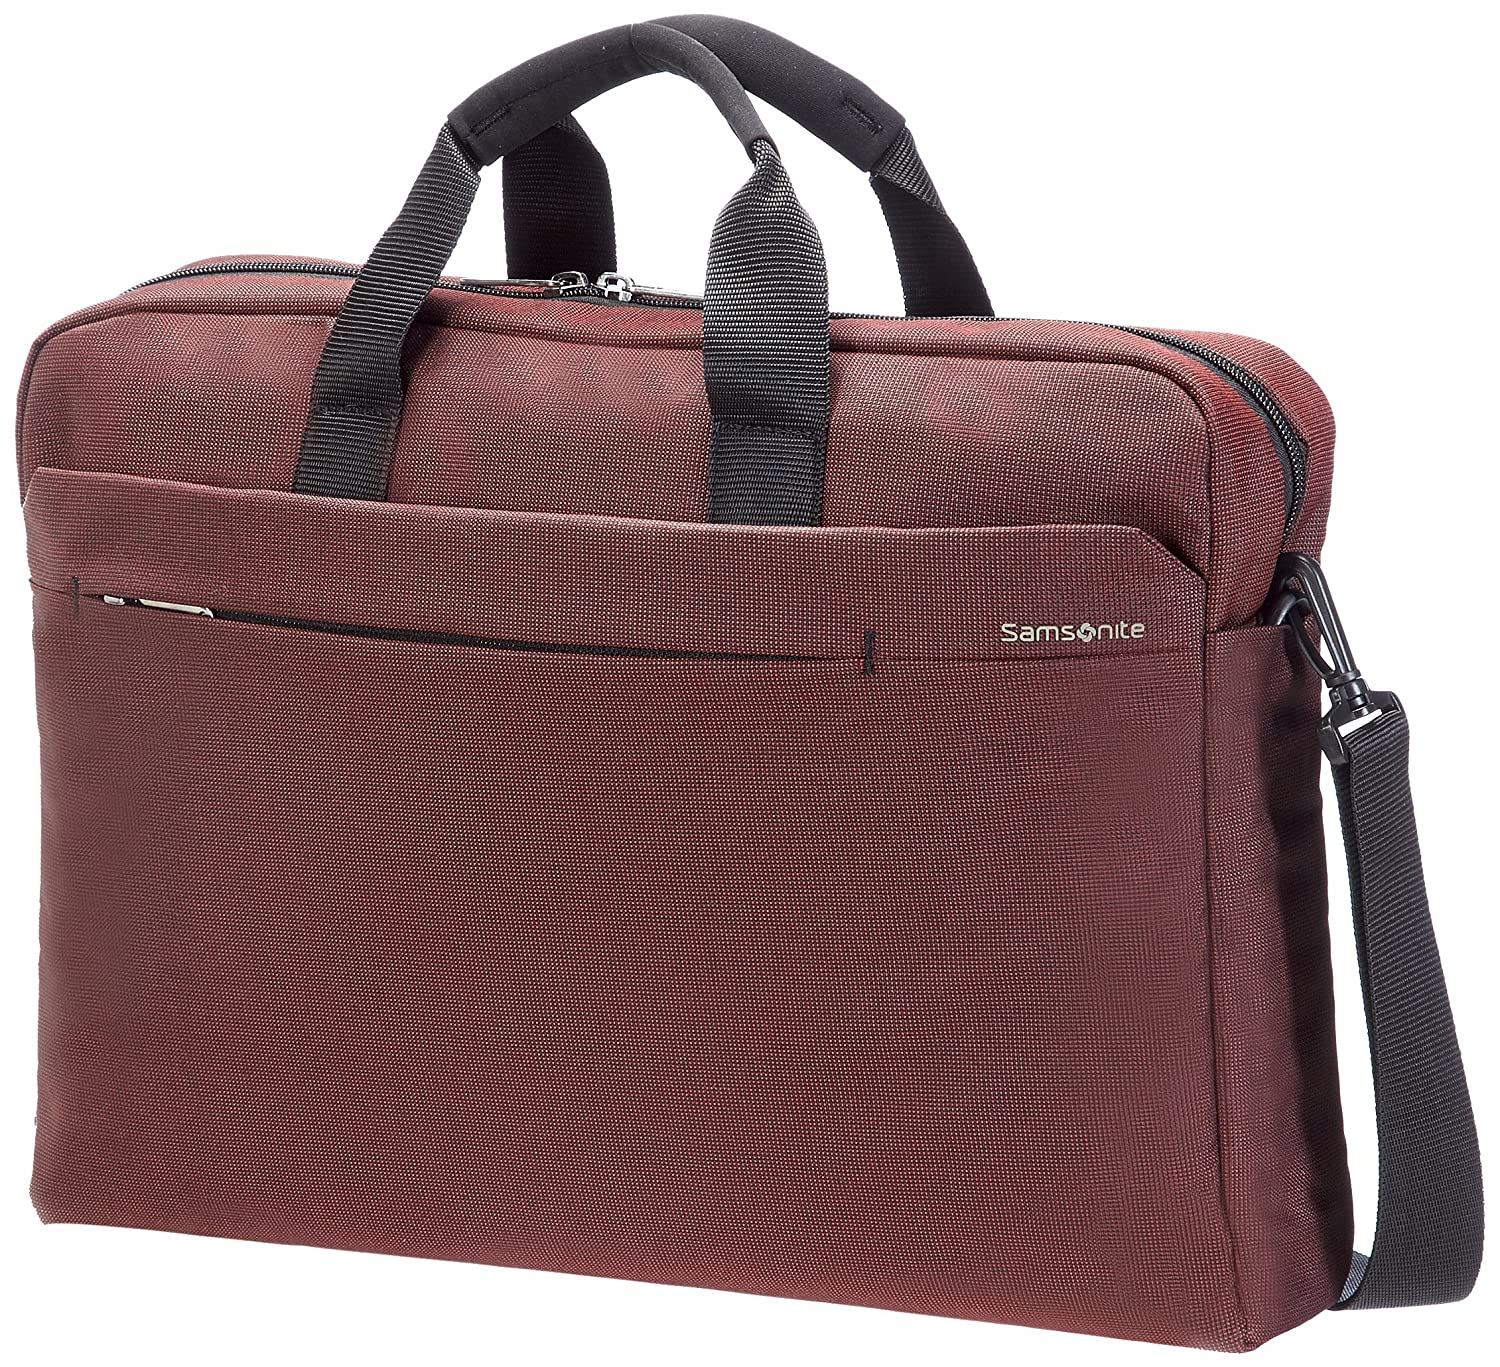 Samsonite Mallette Network 2 Tablet/netb.bag 7'-10.2' 5 Liters Rouge (Ionic Red) 51881 51881 2973 IONIC RED